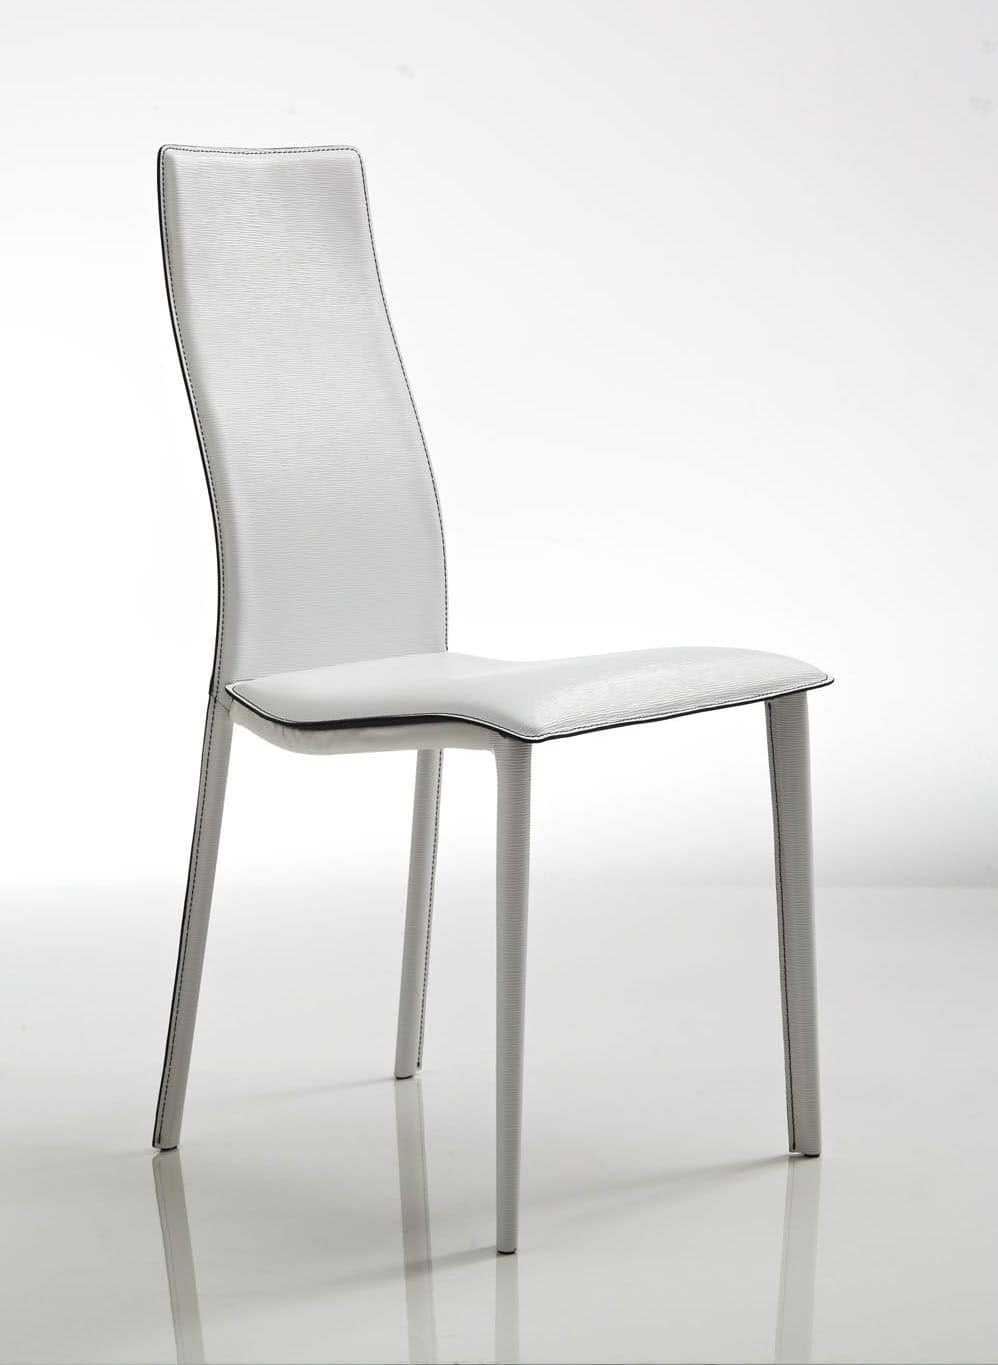 Lulu, Elegant chair, upholstered in white leather, with wavy seat